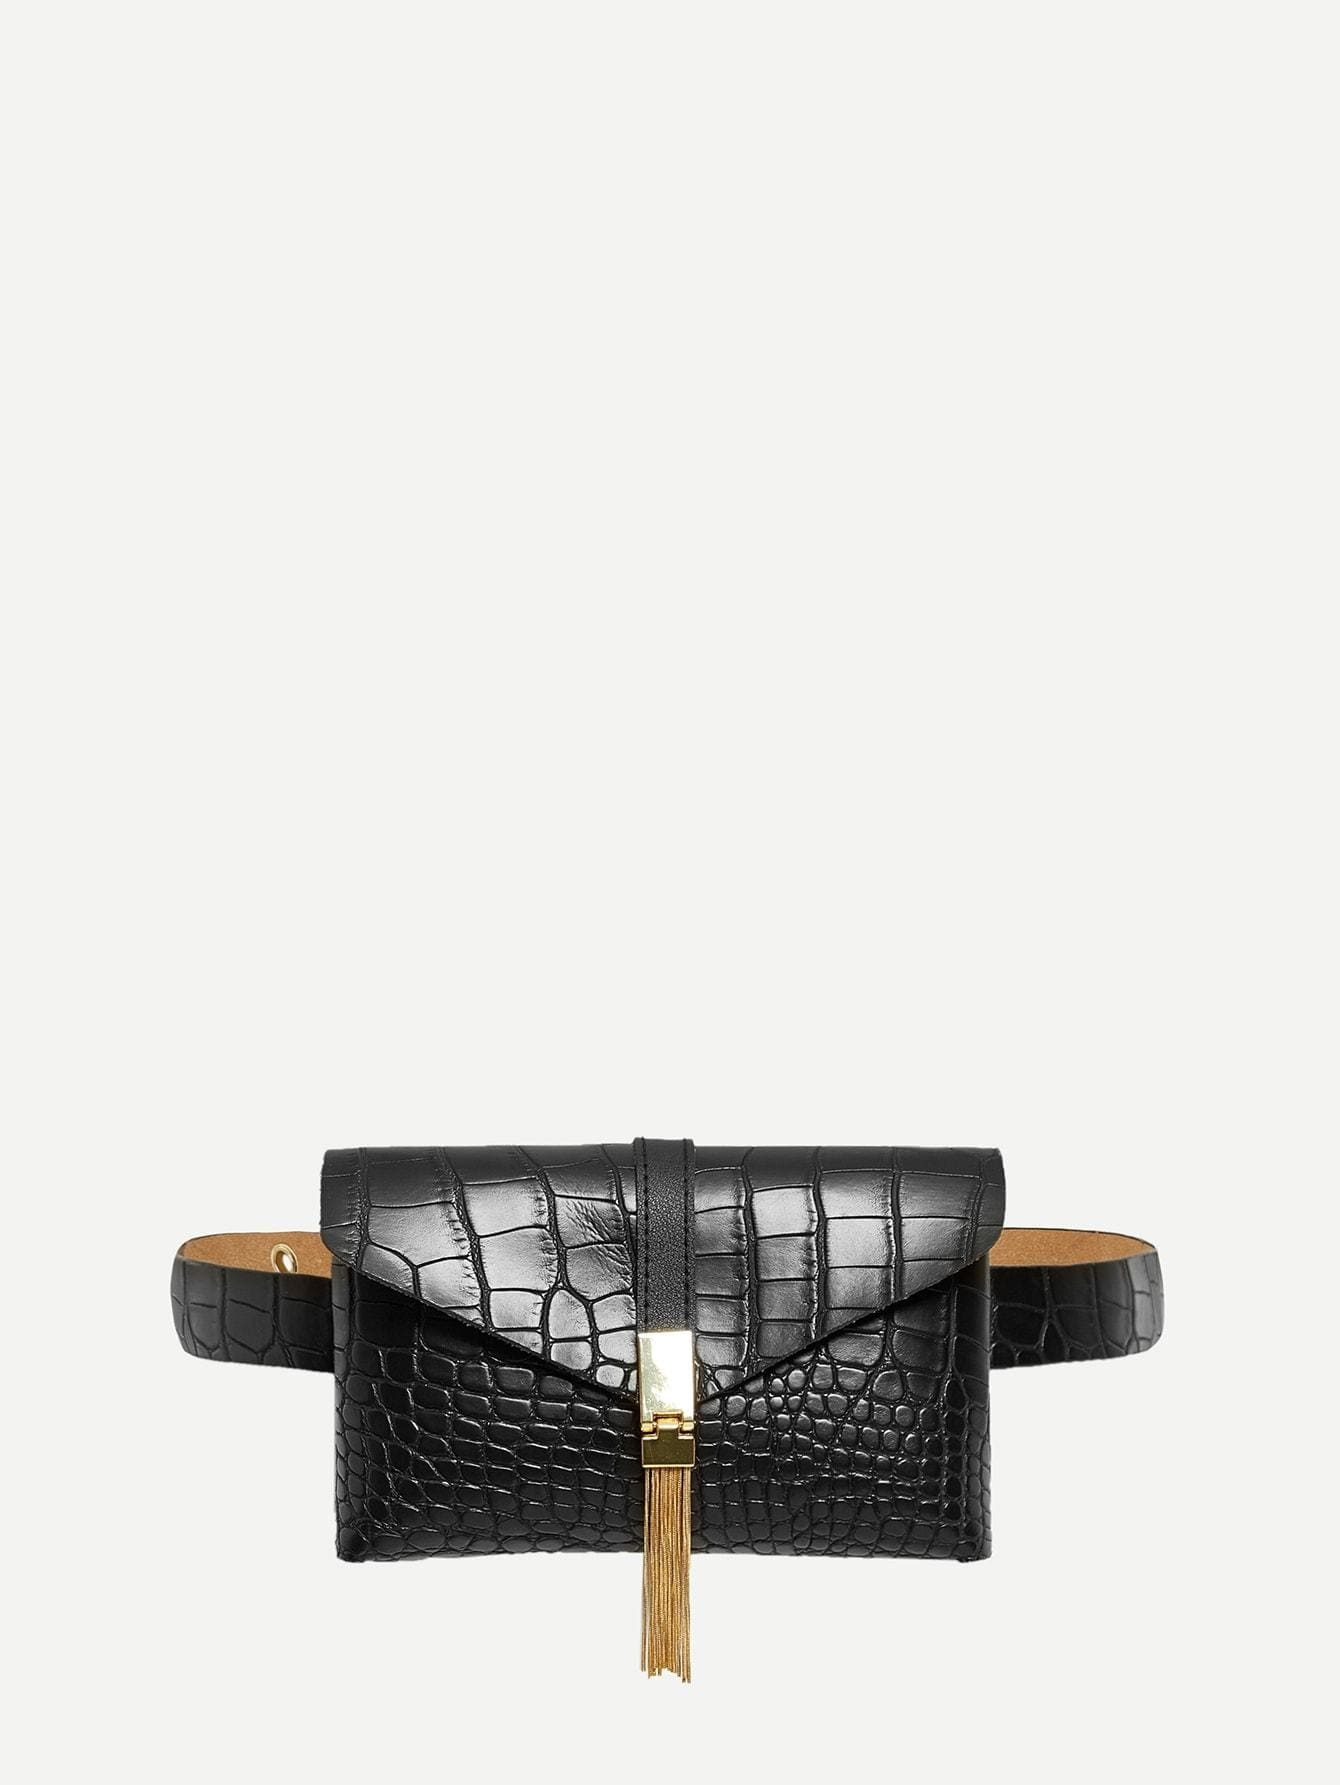 Tassel Detail Crocodile Pattern Bum Bag - Womens Bag